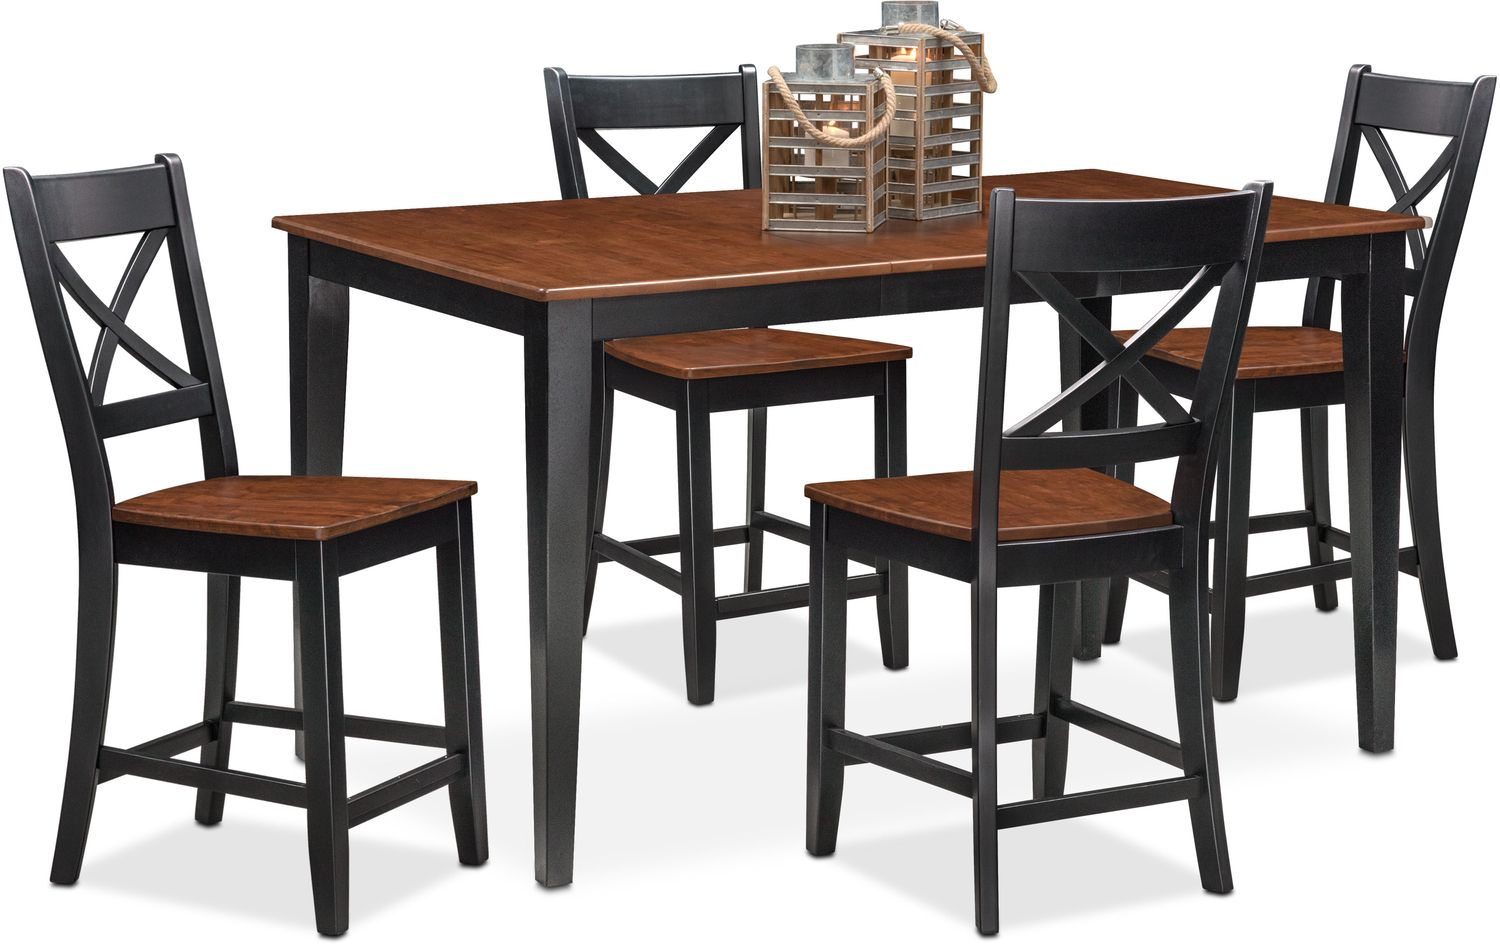 nantucket counter height table and 4 side chairs black and cherry american signature furniture. Black Bedroom Furniture Sets. Home Design Ideas